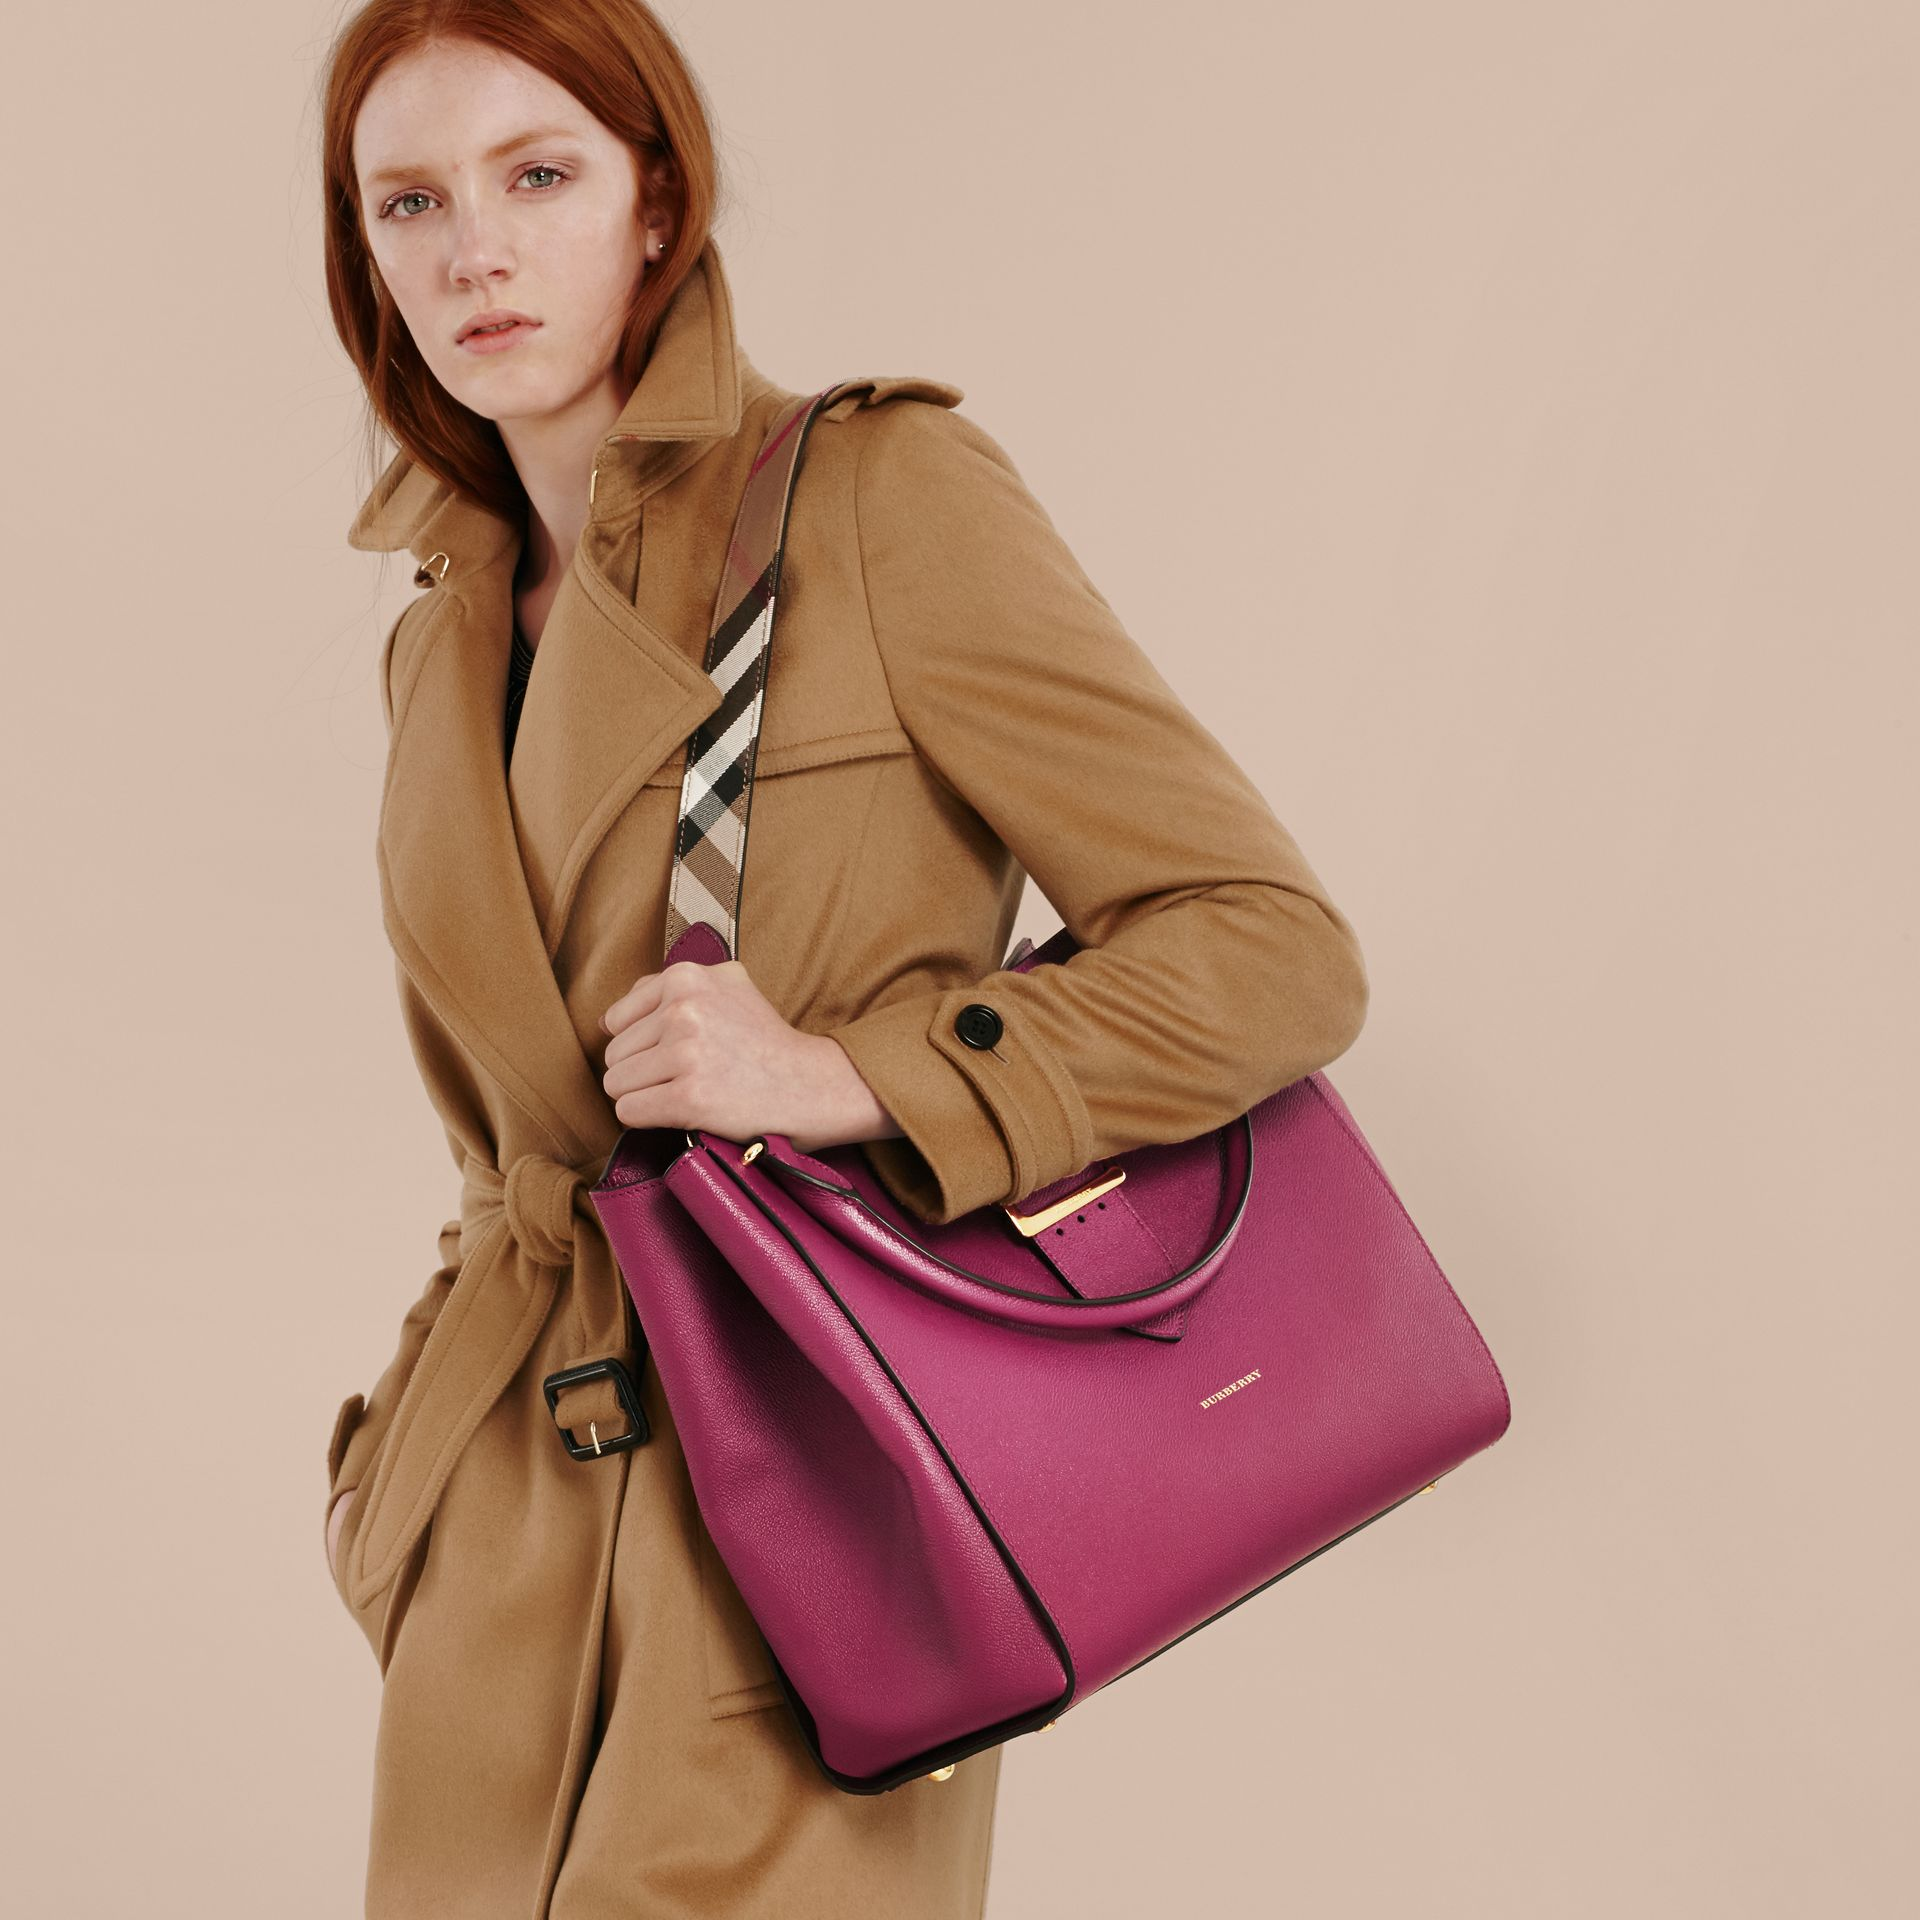 The Large Buckle Tote in Grainy Leather in Dark Plum - Women | Burberry - gallery image 3